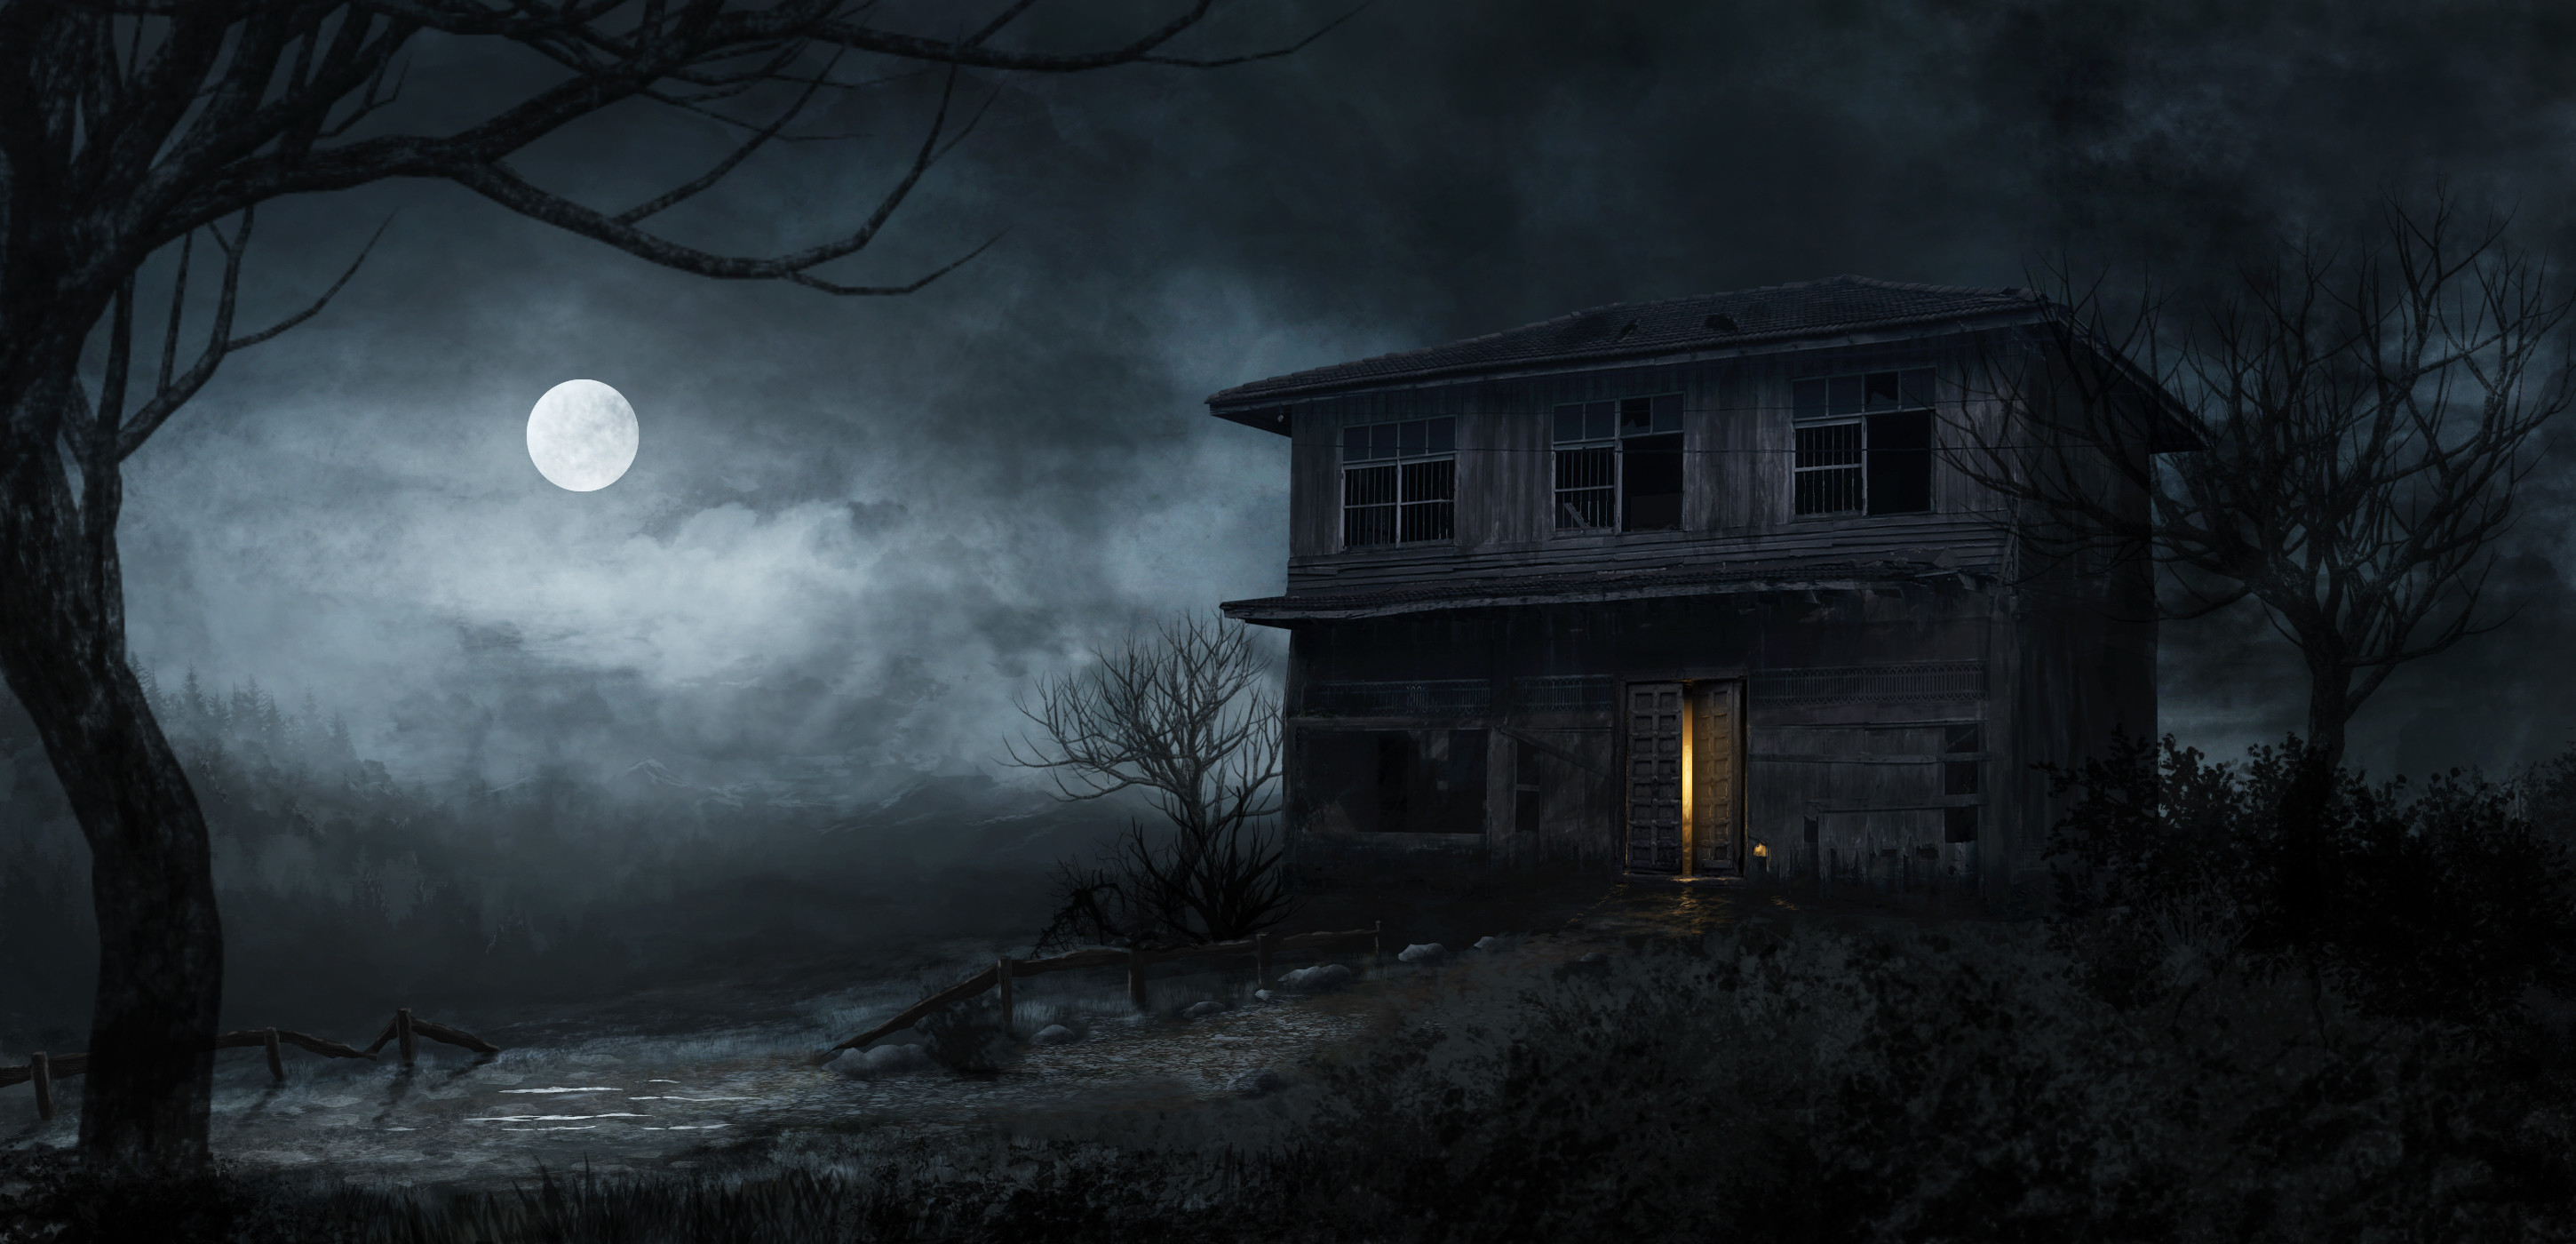 Haunted clipart background. House images x dark